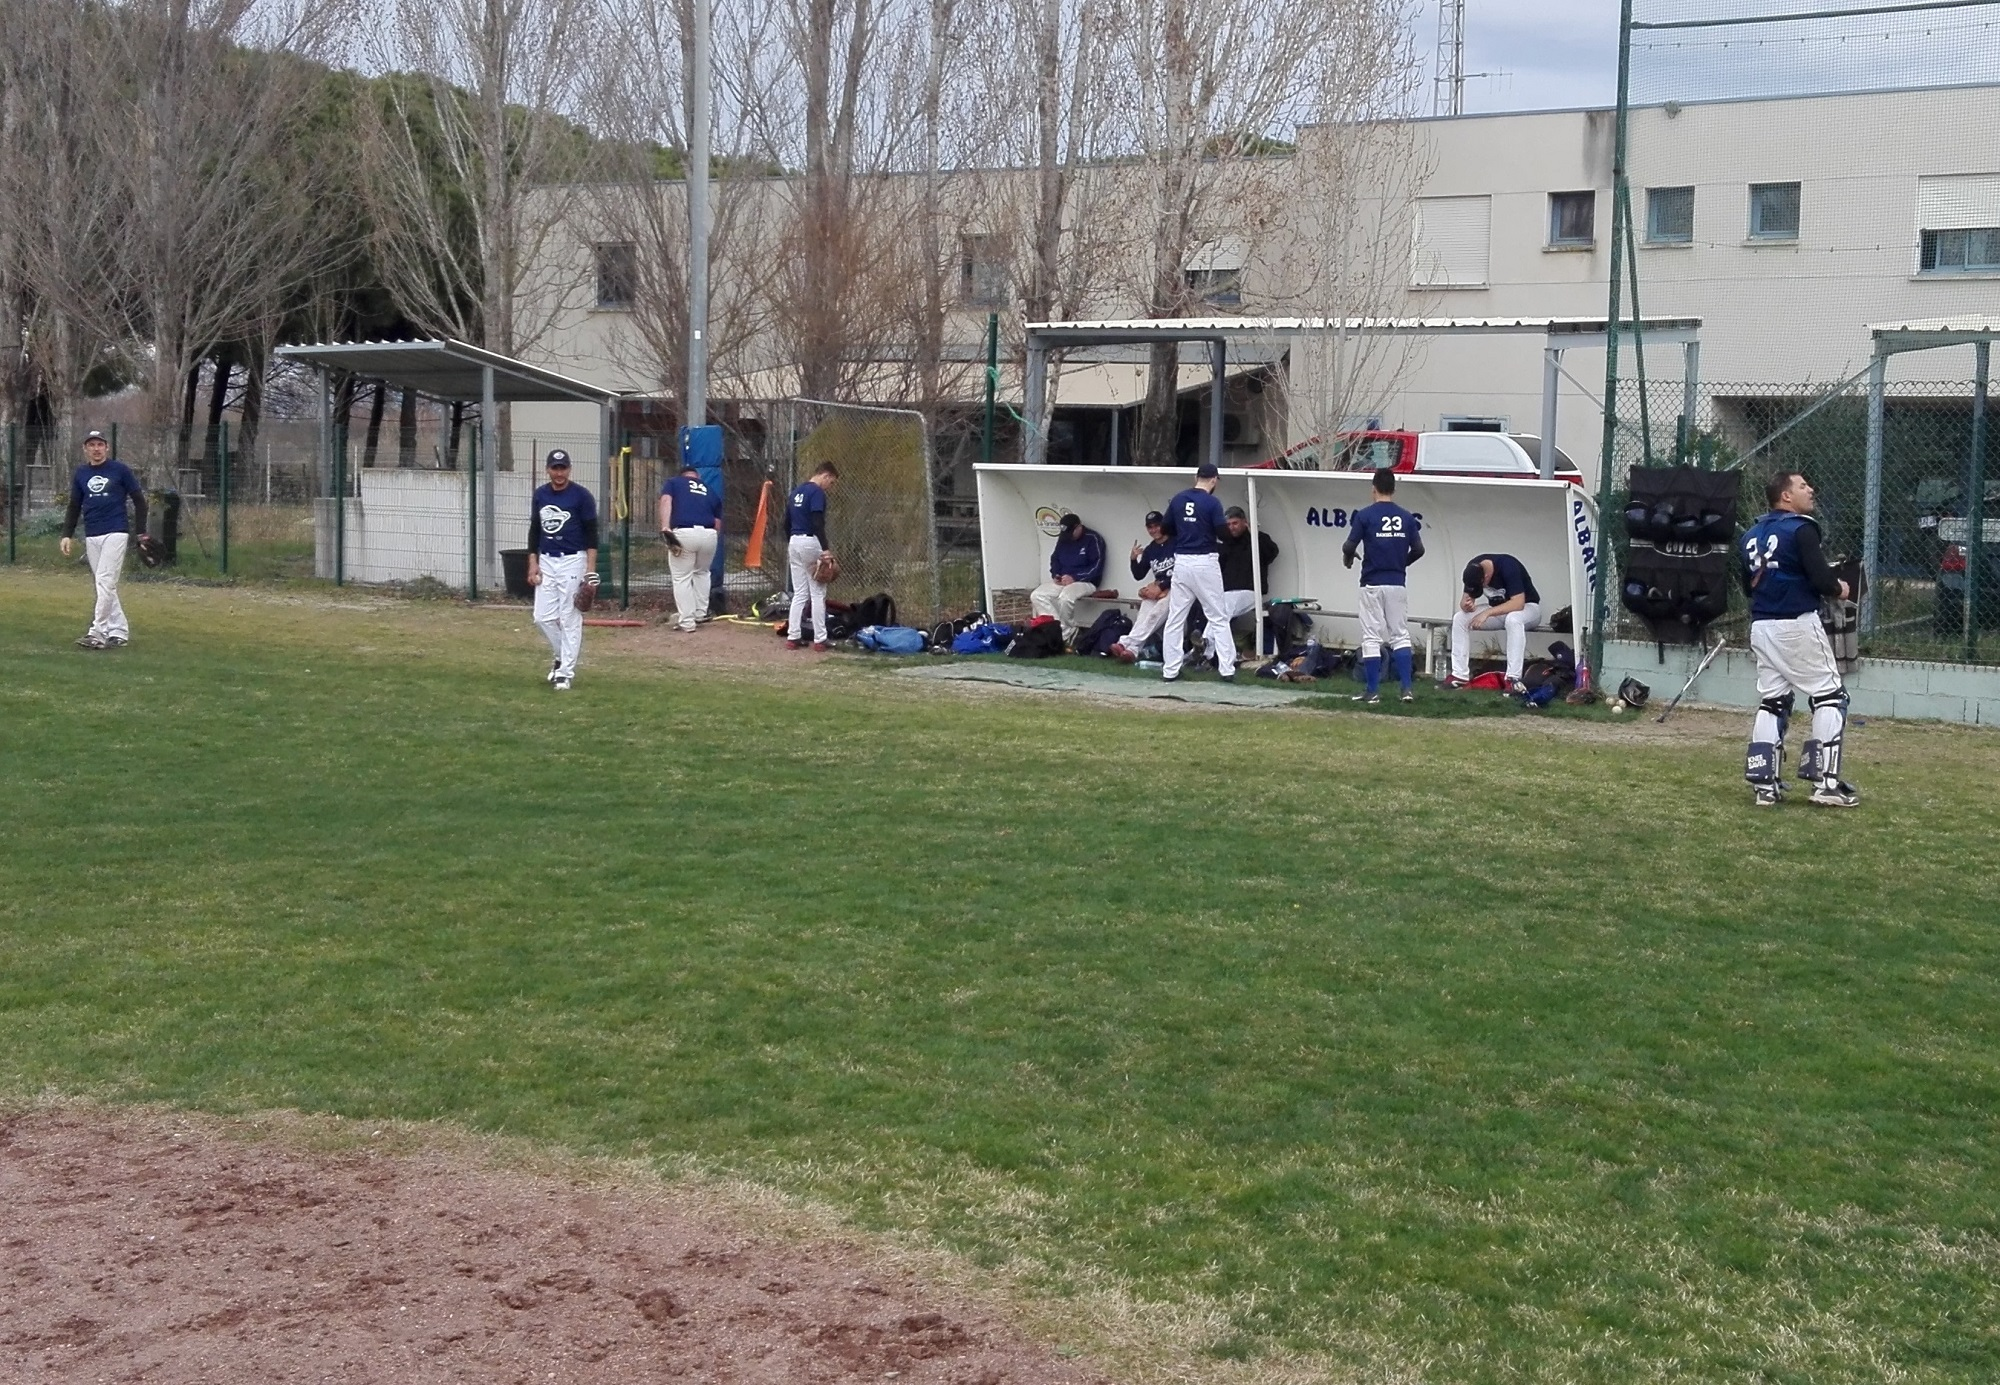 albatros-baseball-lagrandemotte-bench-vs-mtp